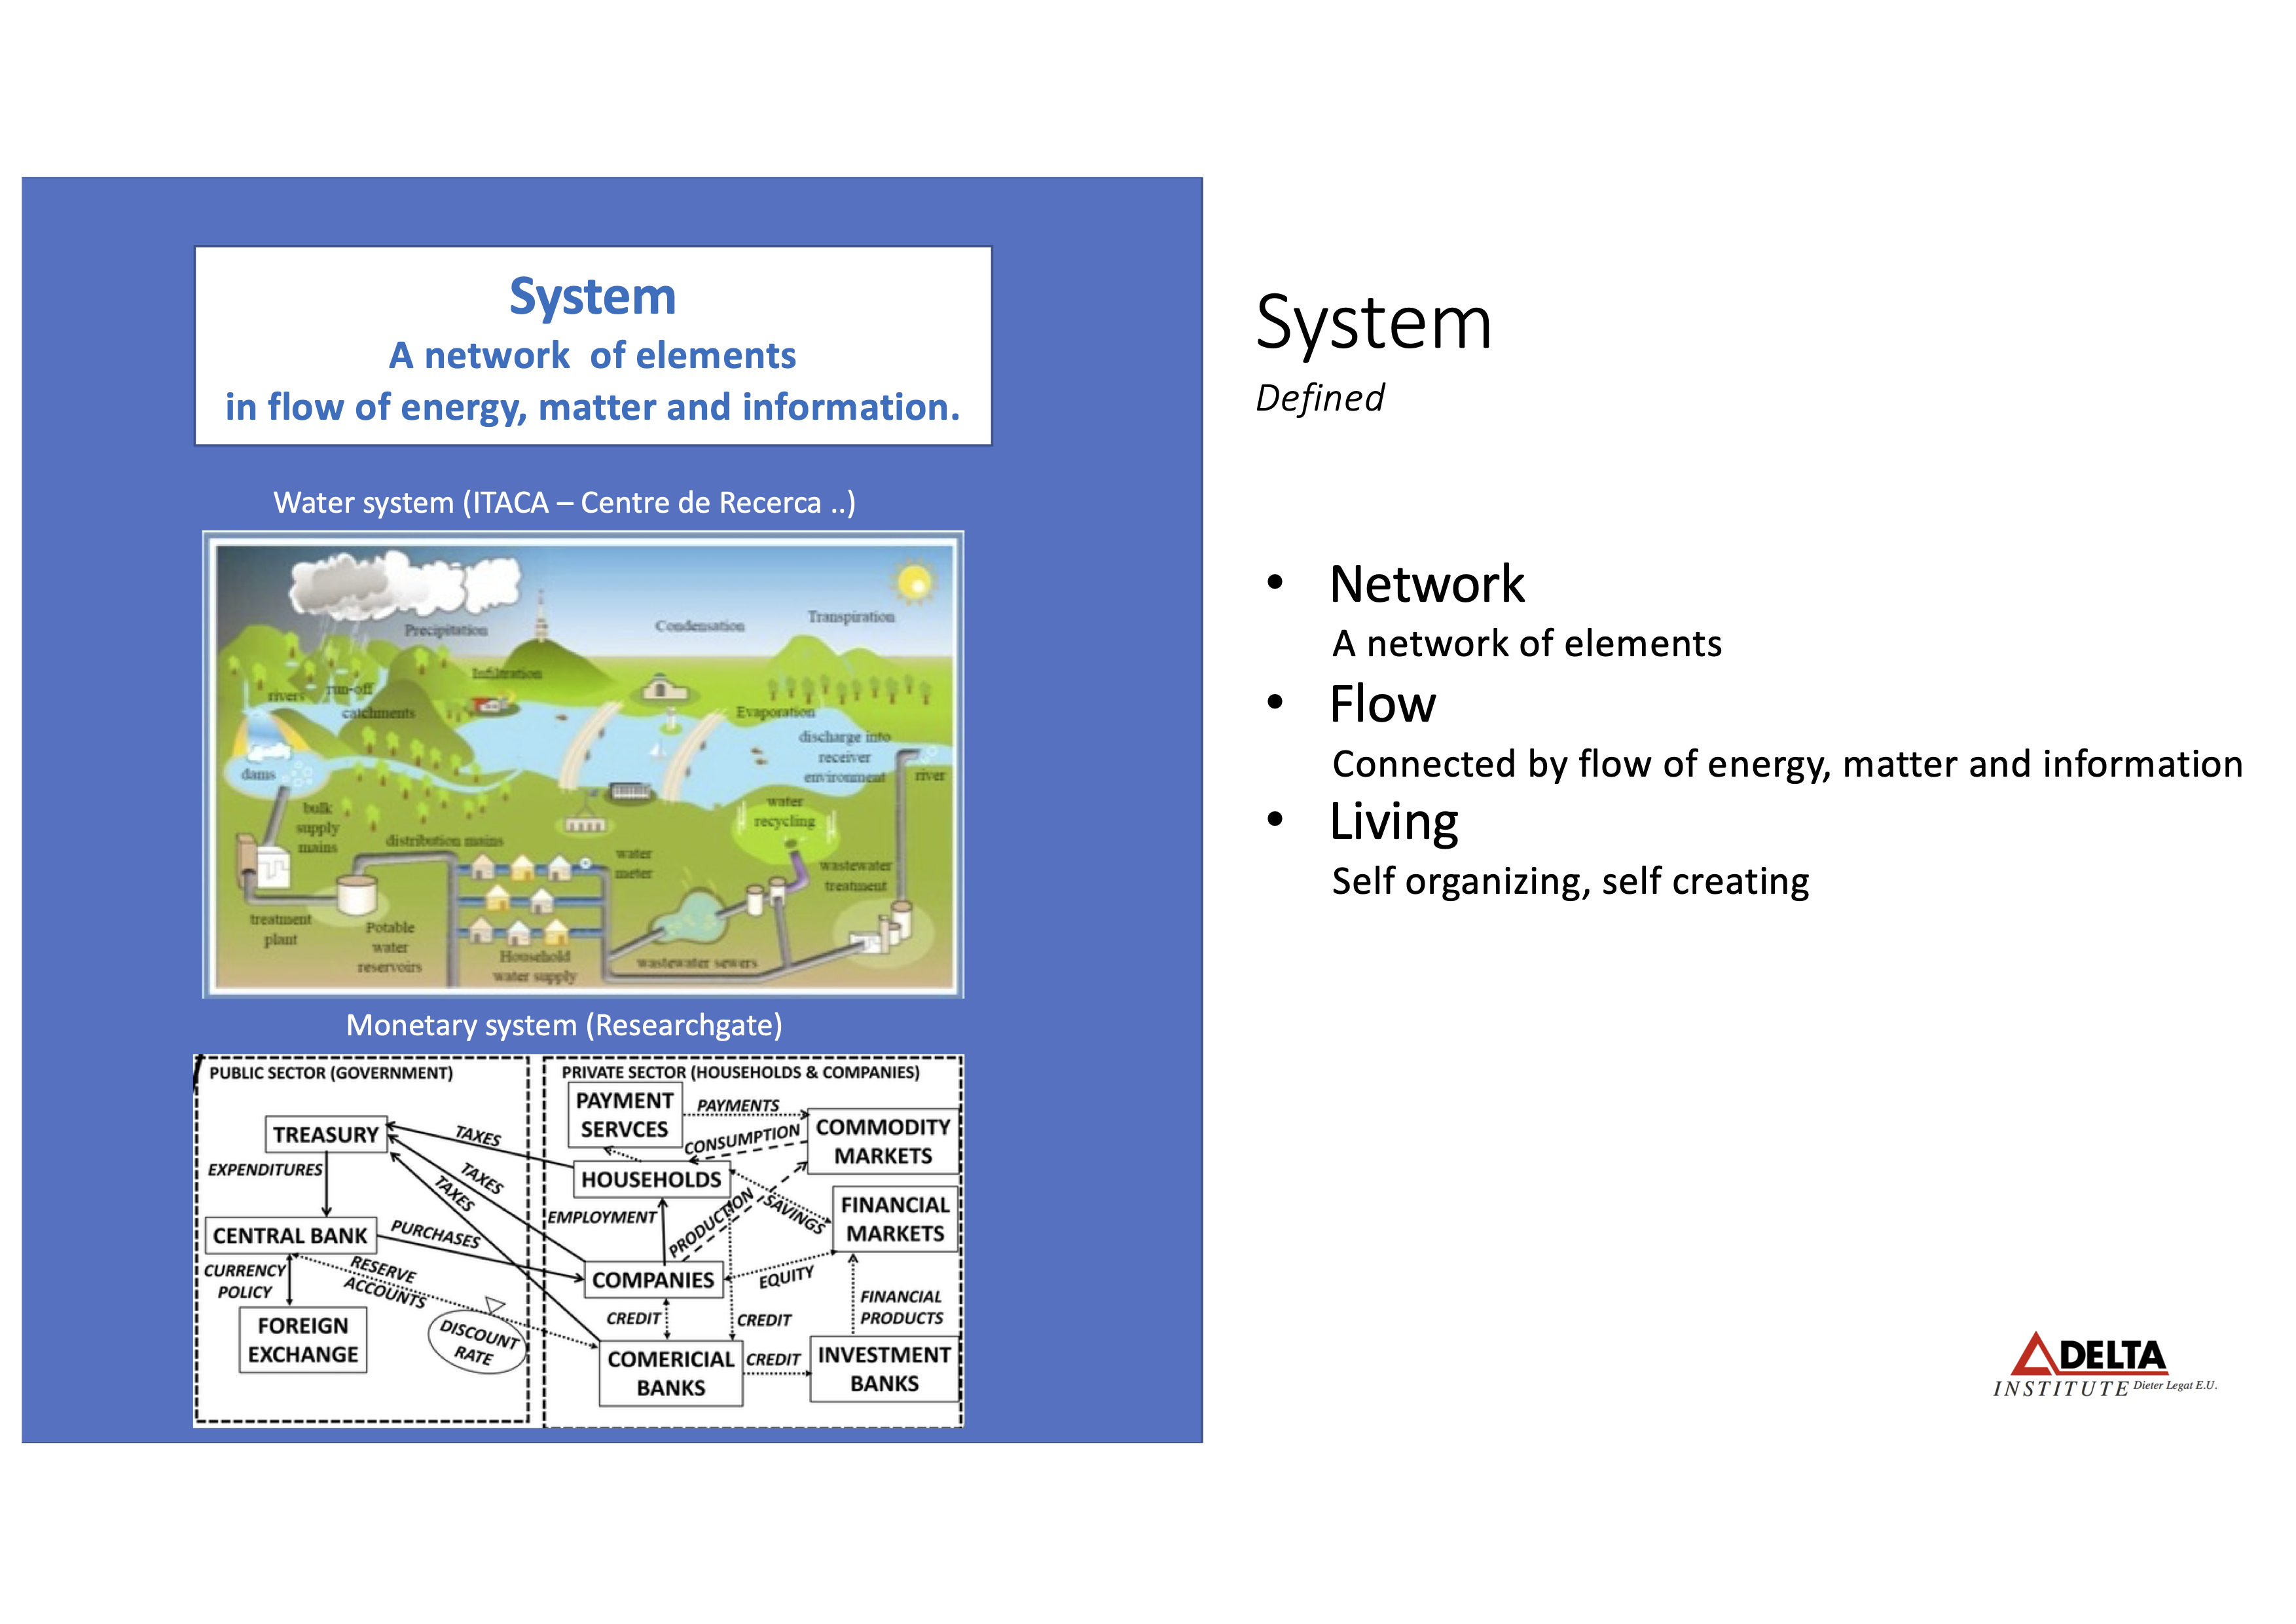 What are systems? Water system and monetary system